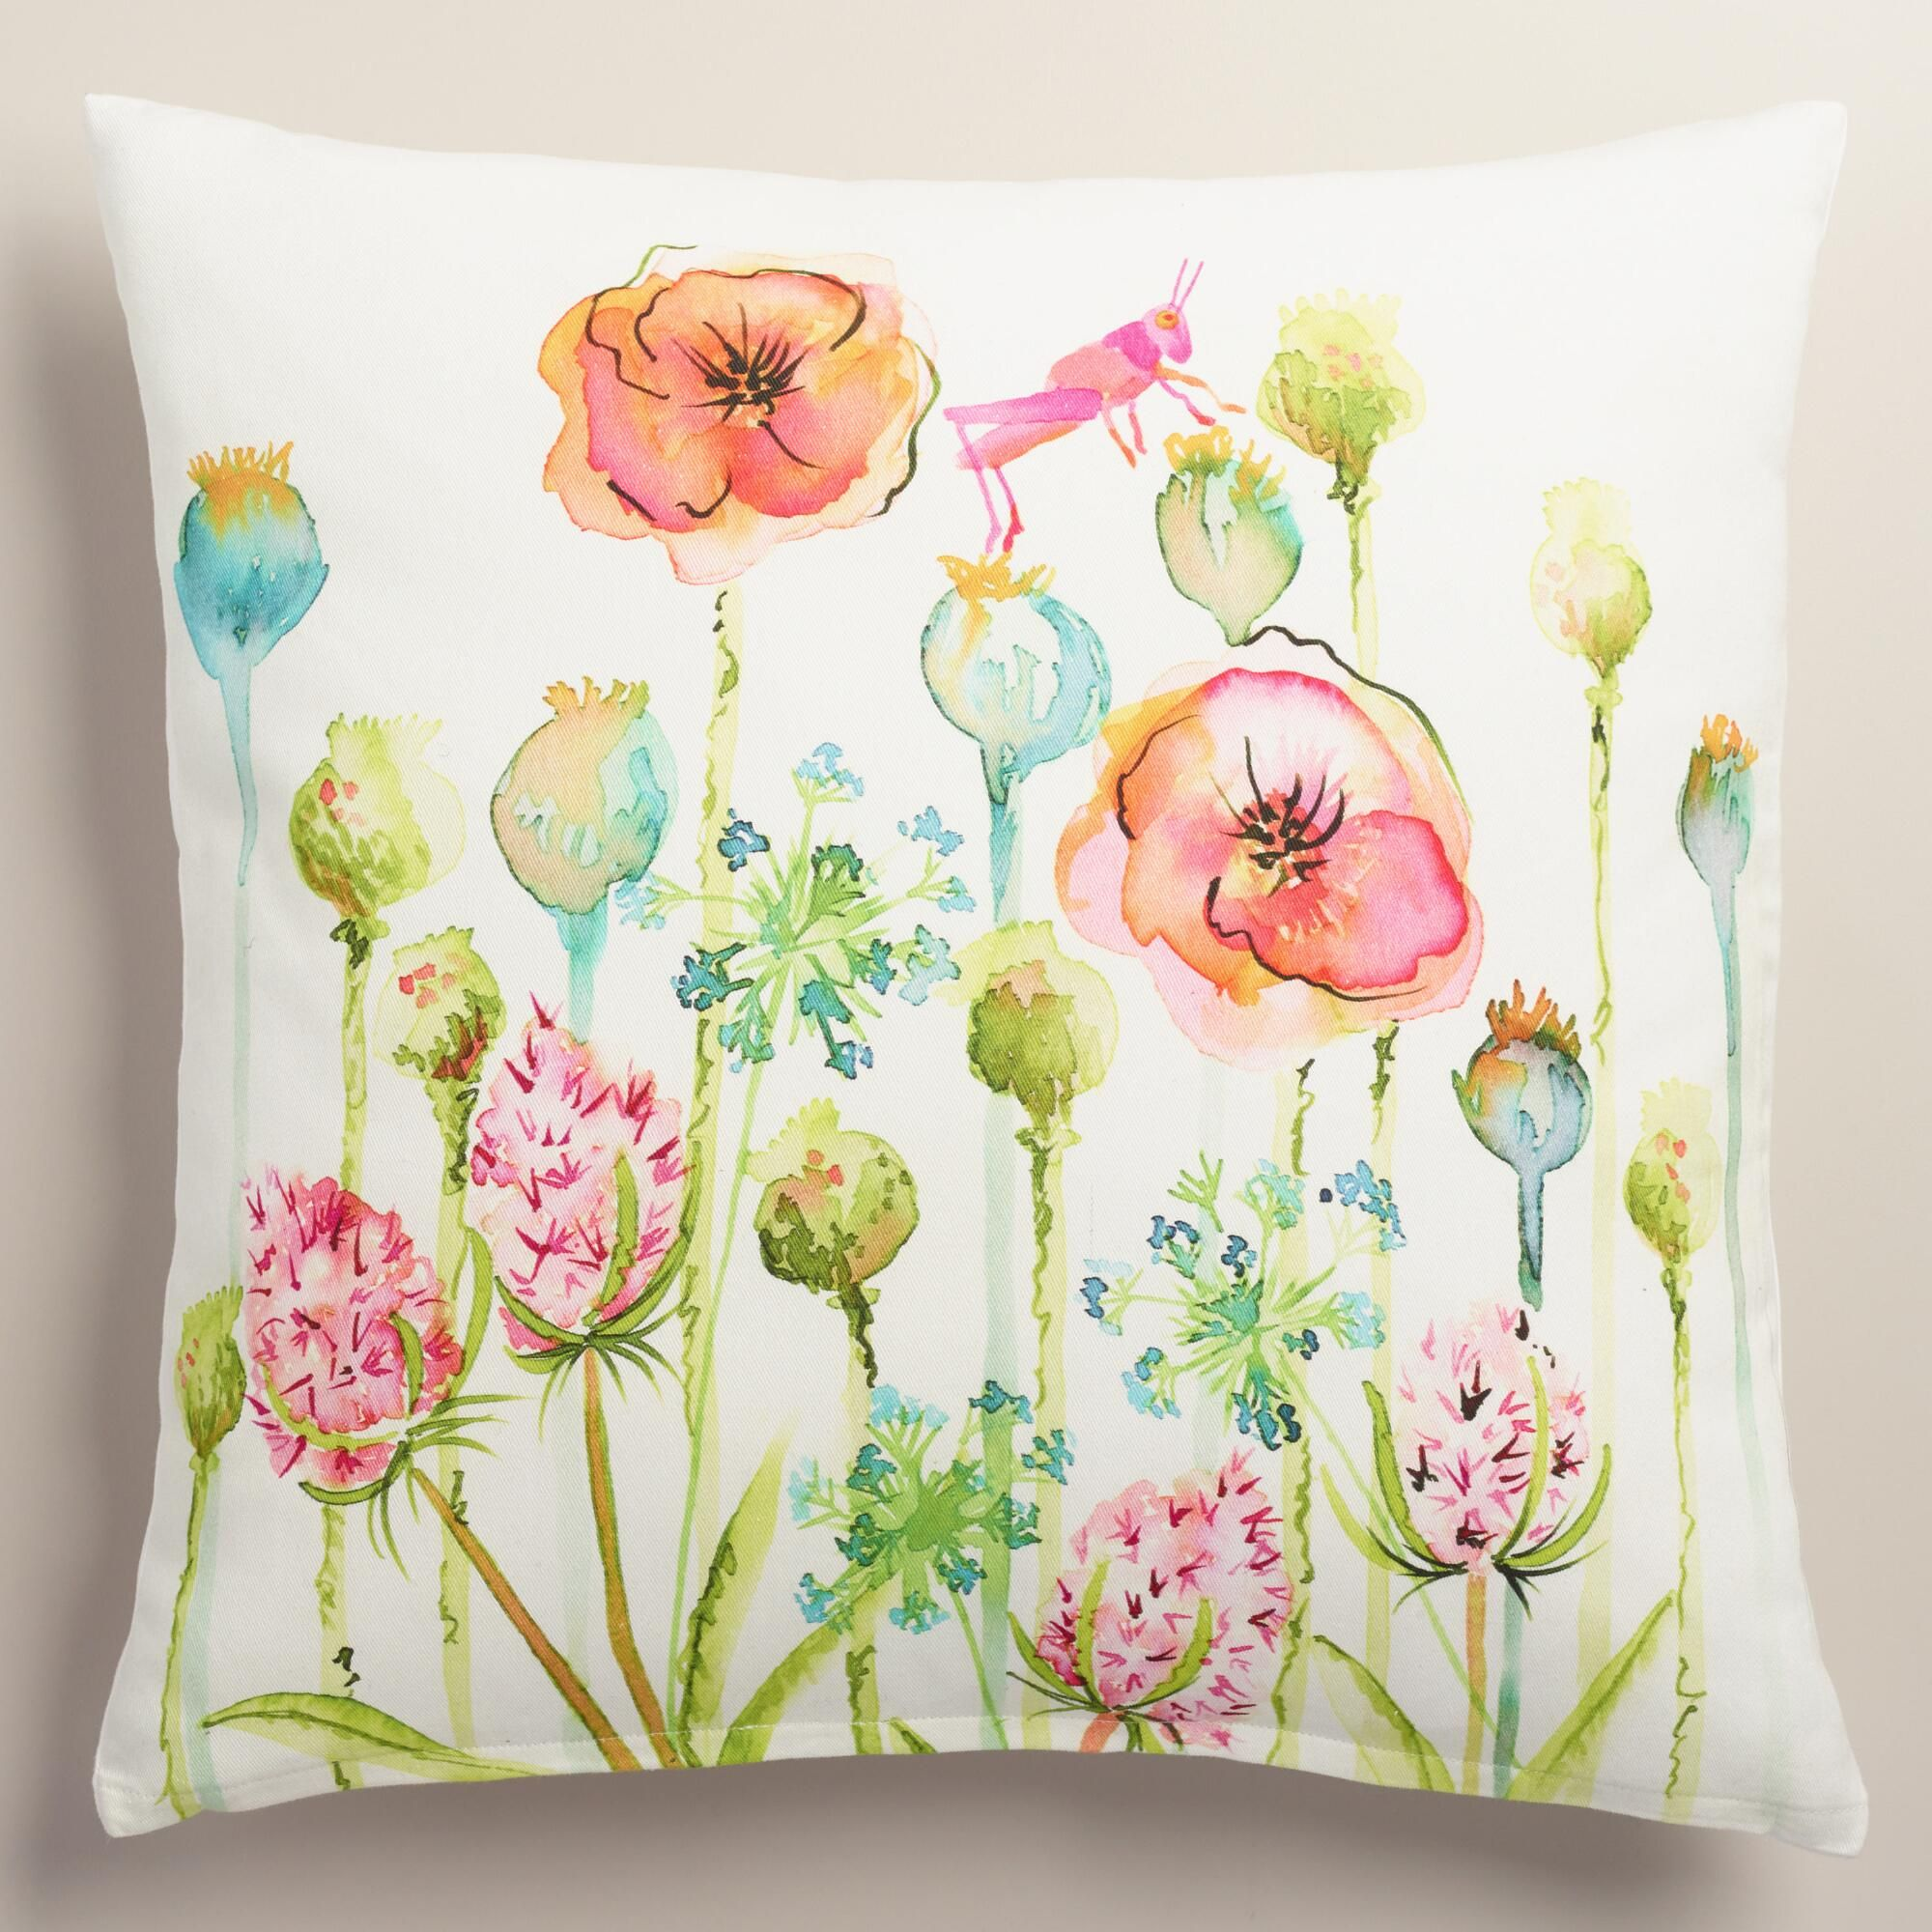 Featuring Our Whimsical Watercolor Floral Design With